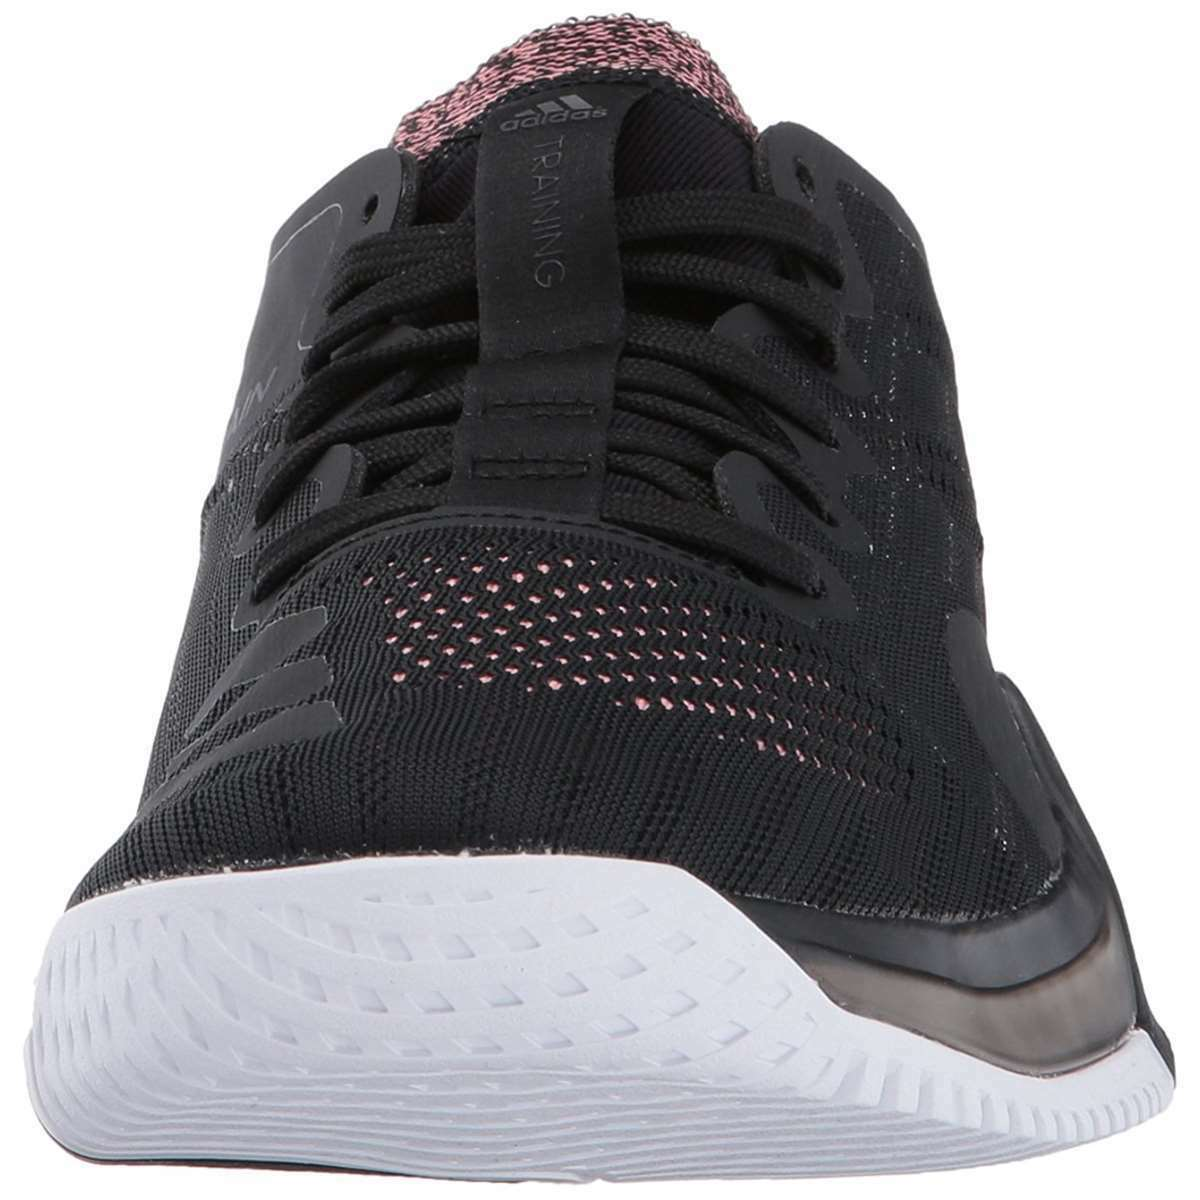 reputable site 45aa2 72ef0 Women Adidas CRAZYTRAIN ELITE Womens Cross Training Shoes Black Rose  Sneakers  eBay